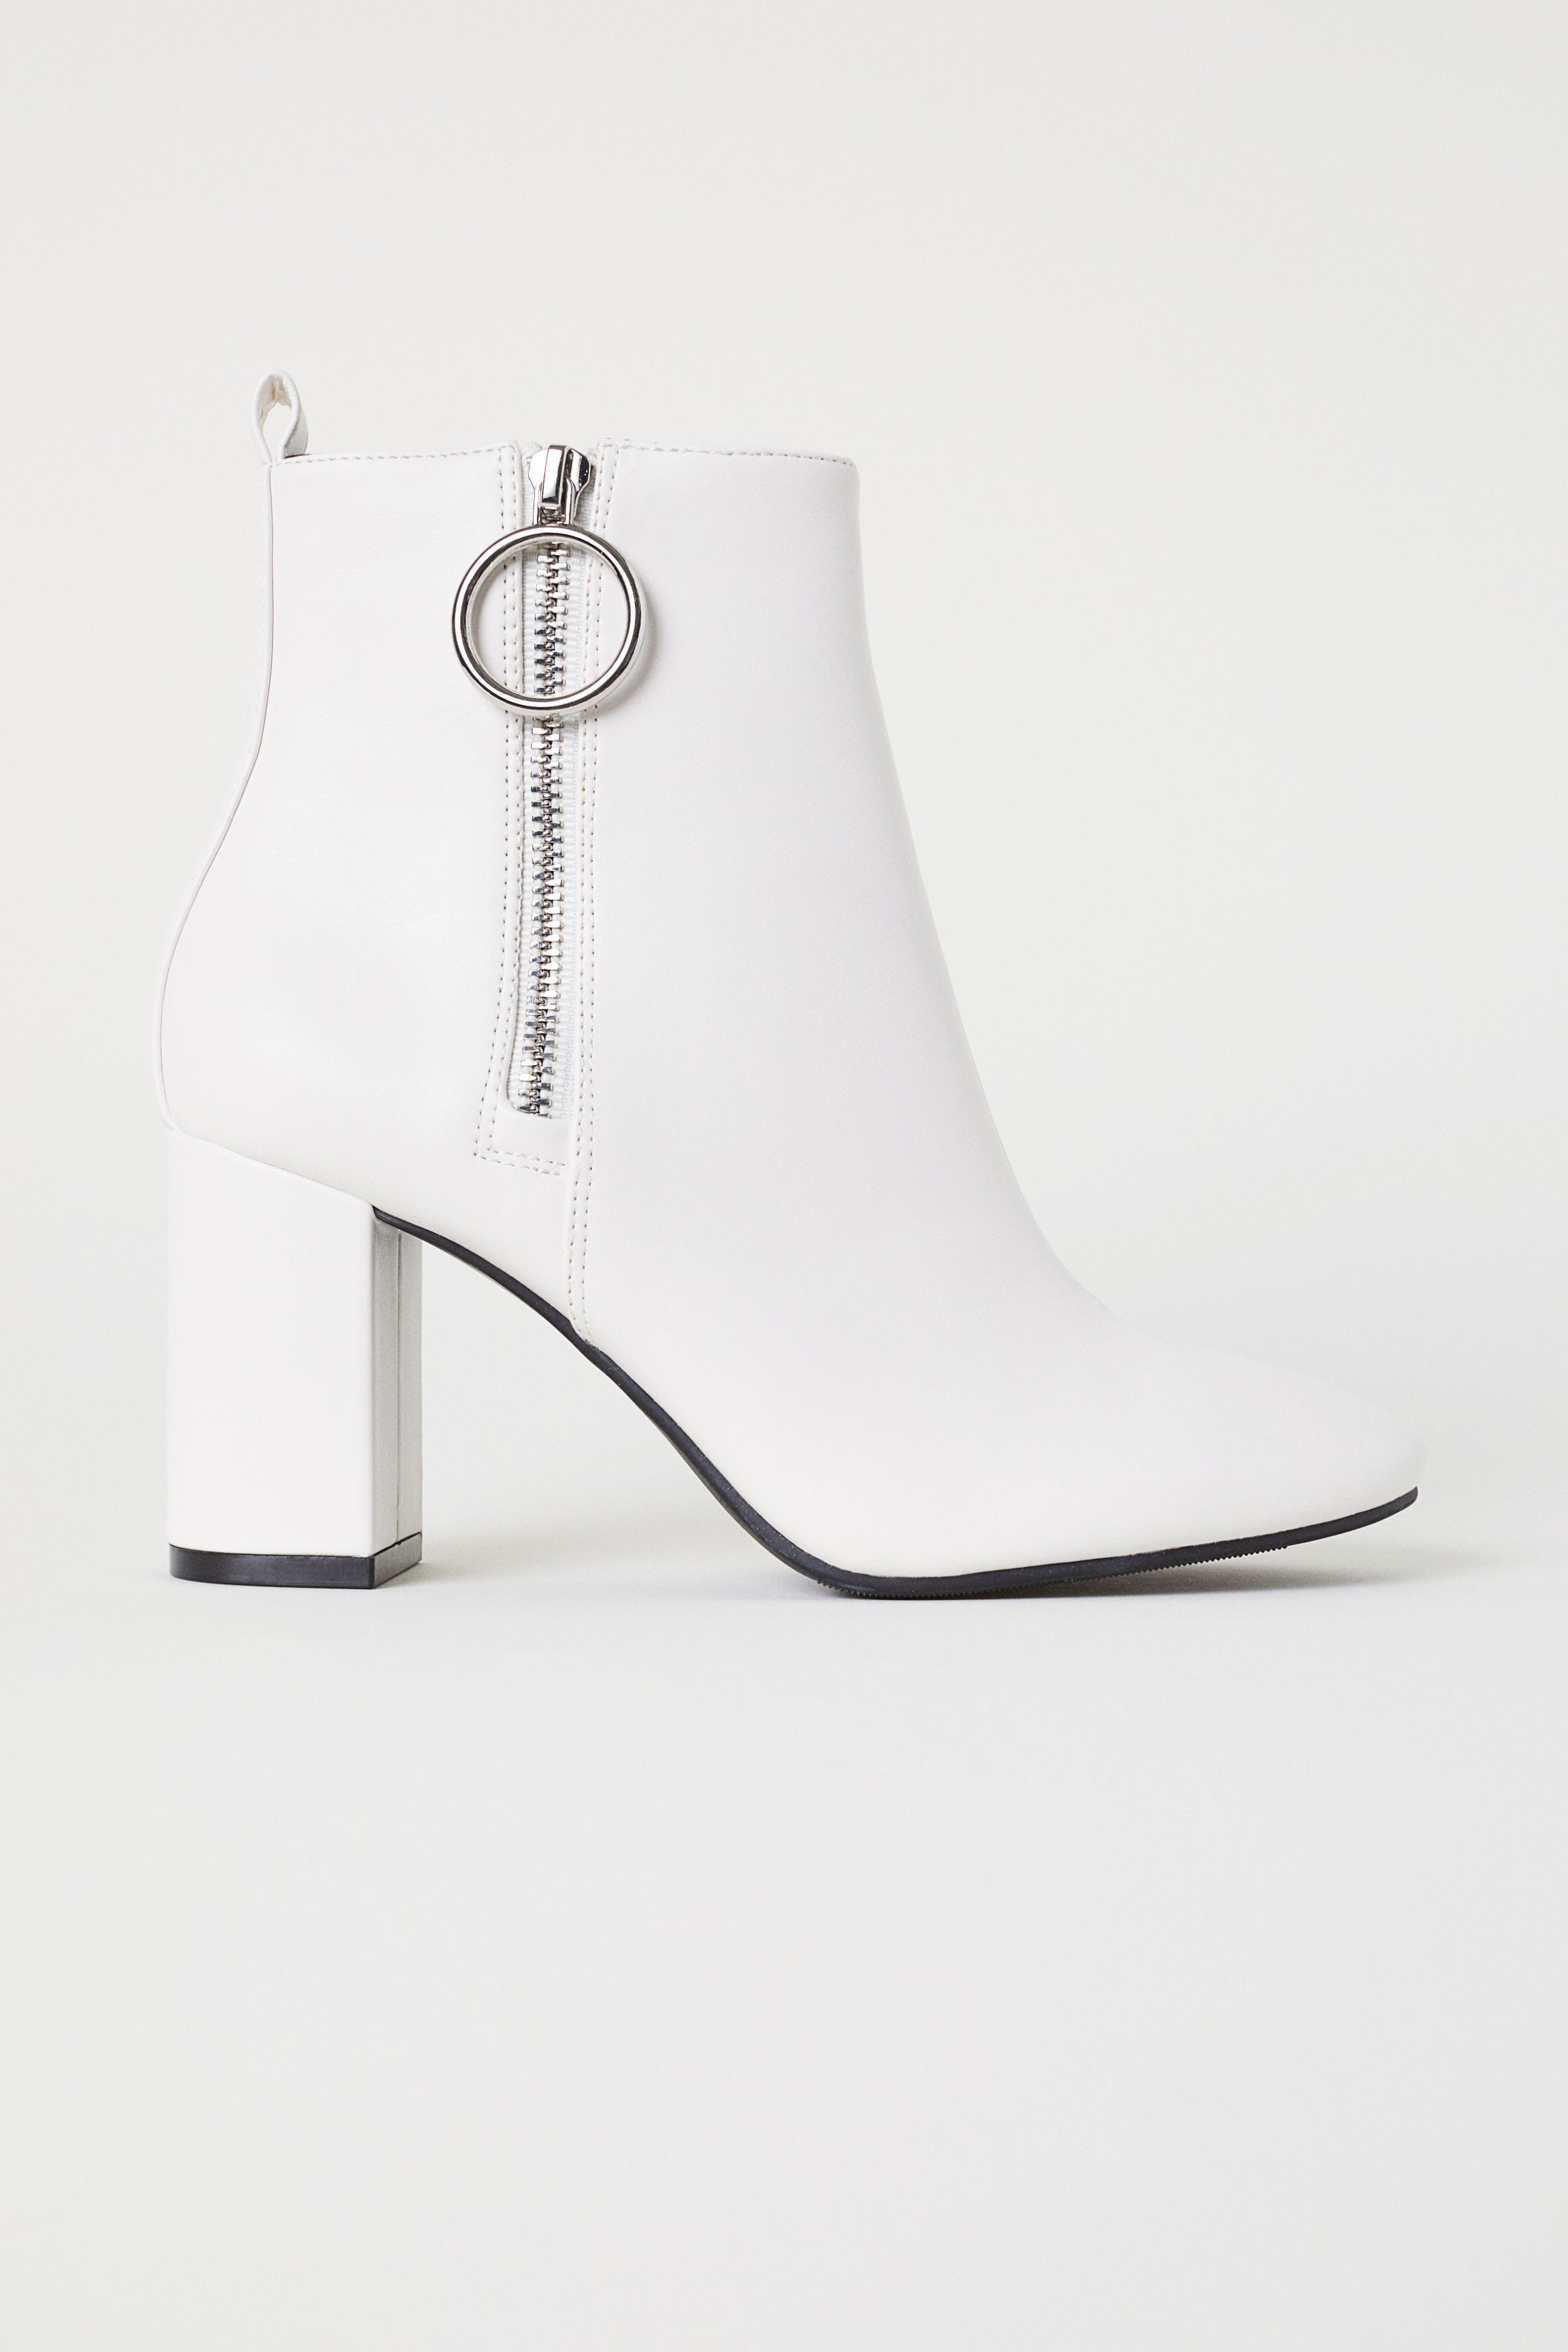 59ce3303d2b60 White Boot Trend Fall 2018 For Women, Best Shoe Styles